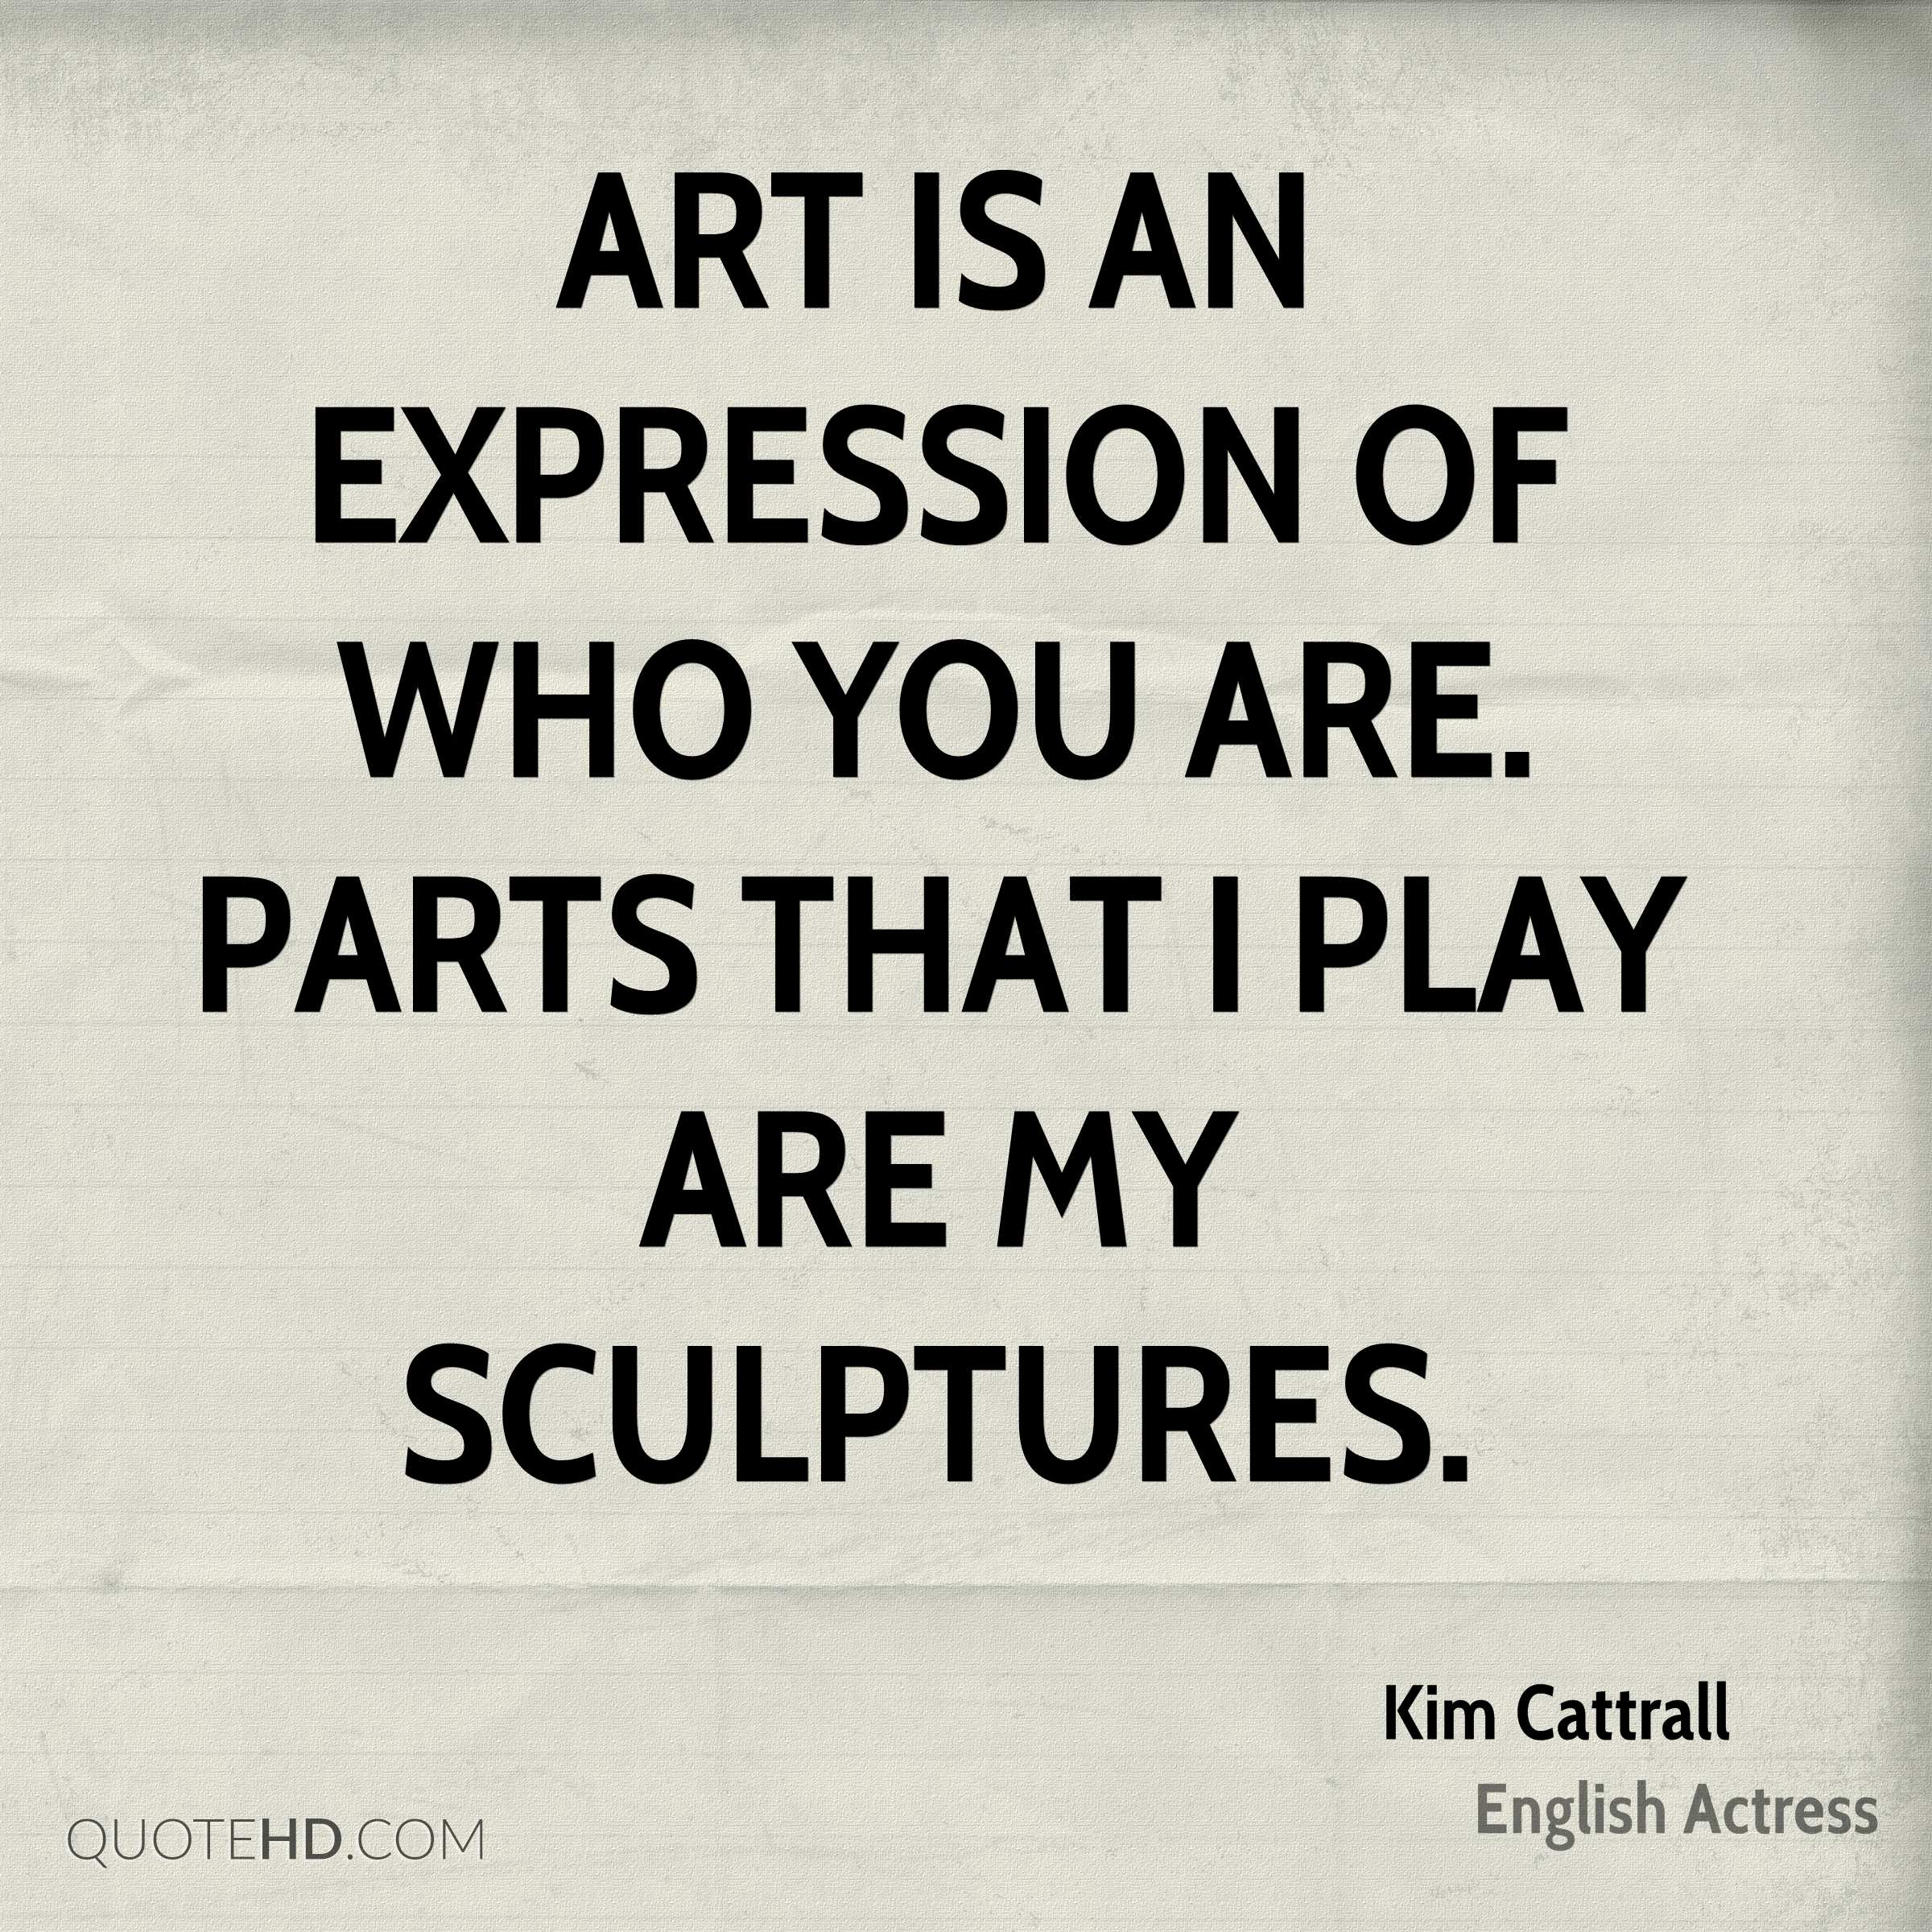 Art is an expression of who you are. Parts that I play are my sculptures.